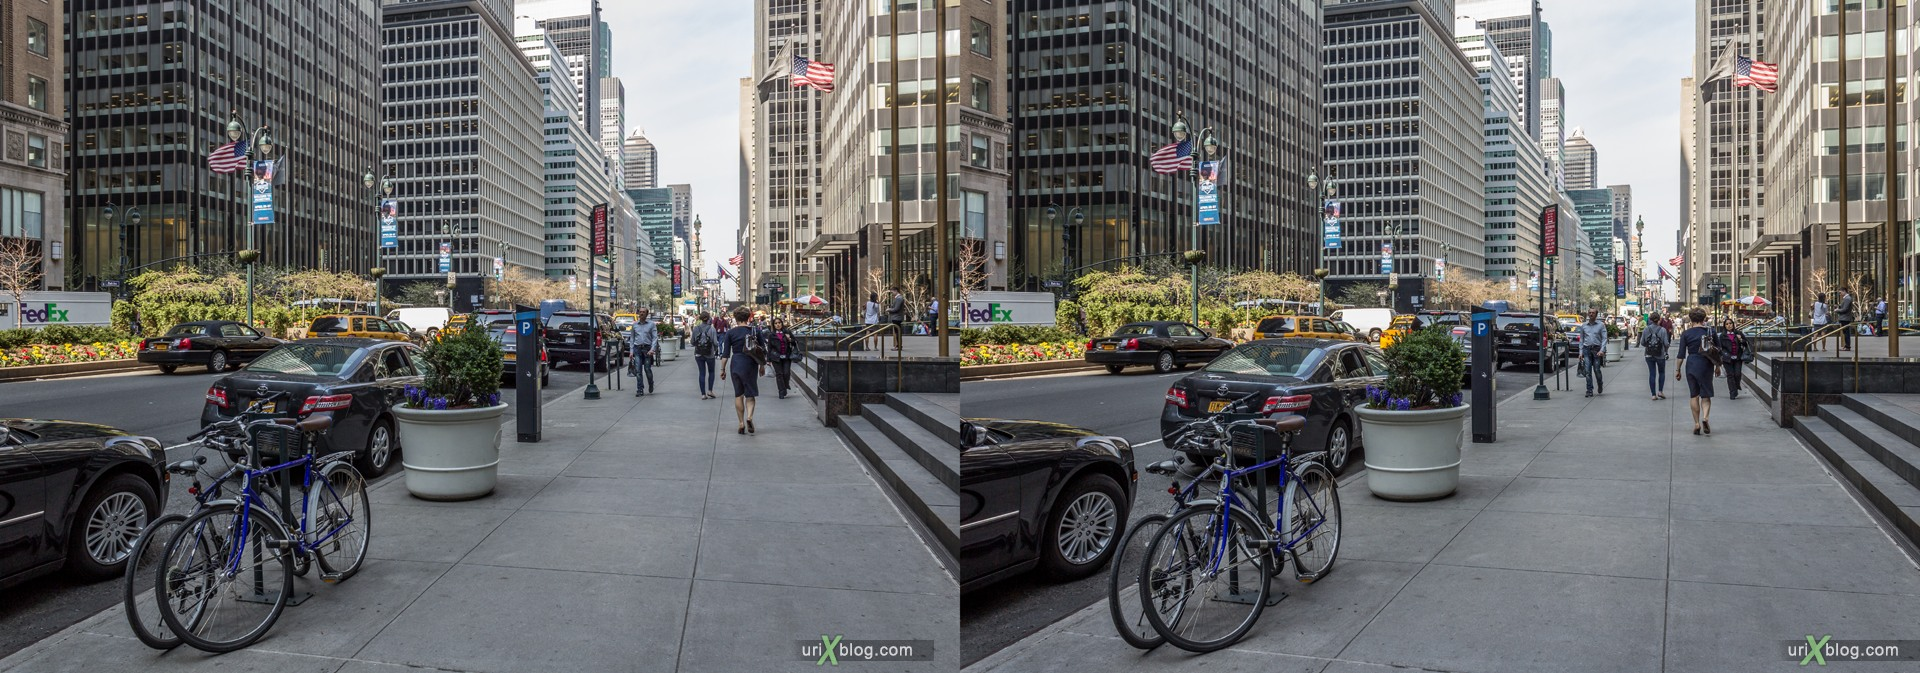 2013, Park Ave, NYC, New York City, USA, 3D, stereo pair, cross-eyed, crossview, cross view stereo pair, stereoscopic